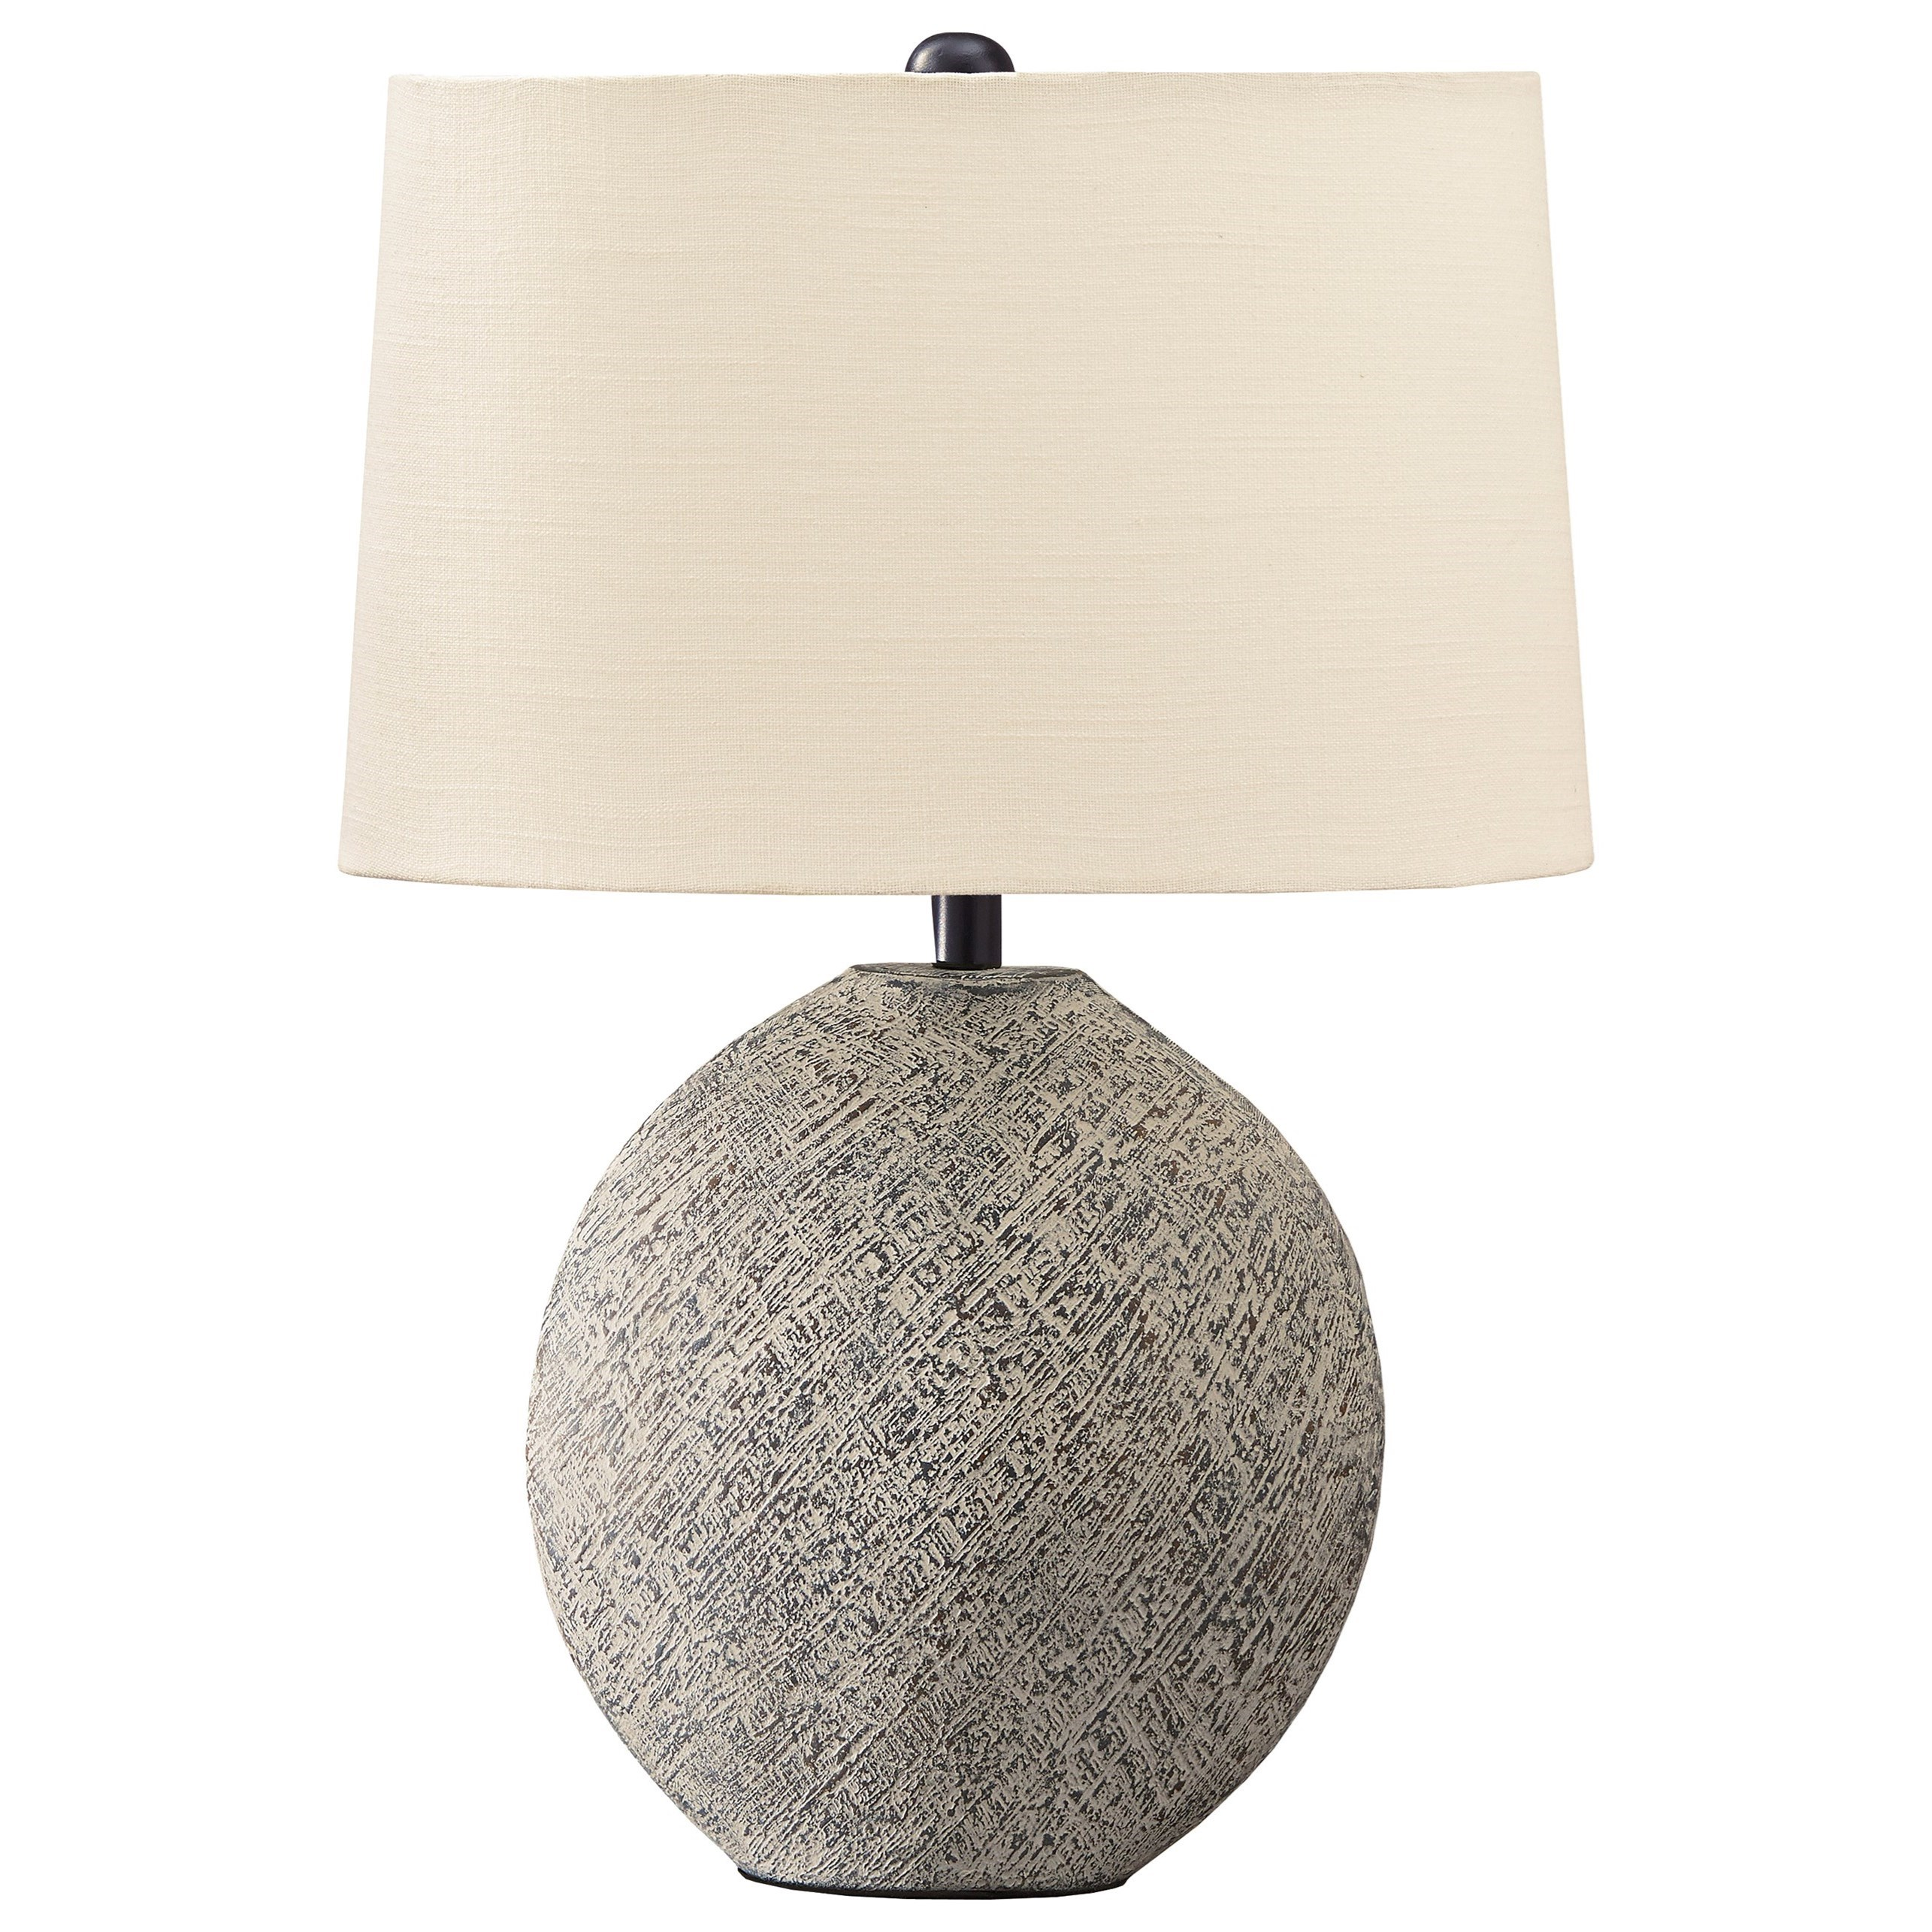 Lamps - Casual Harif Beige Table Lamp by Vendor 3 at Becker Furniture